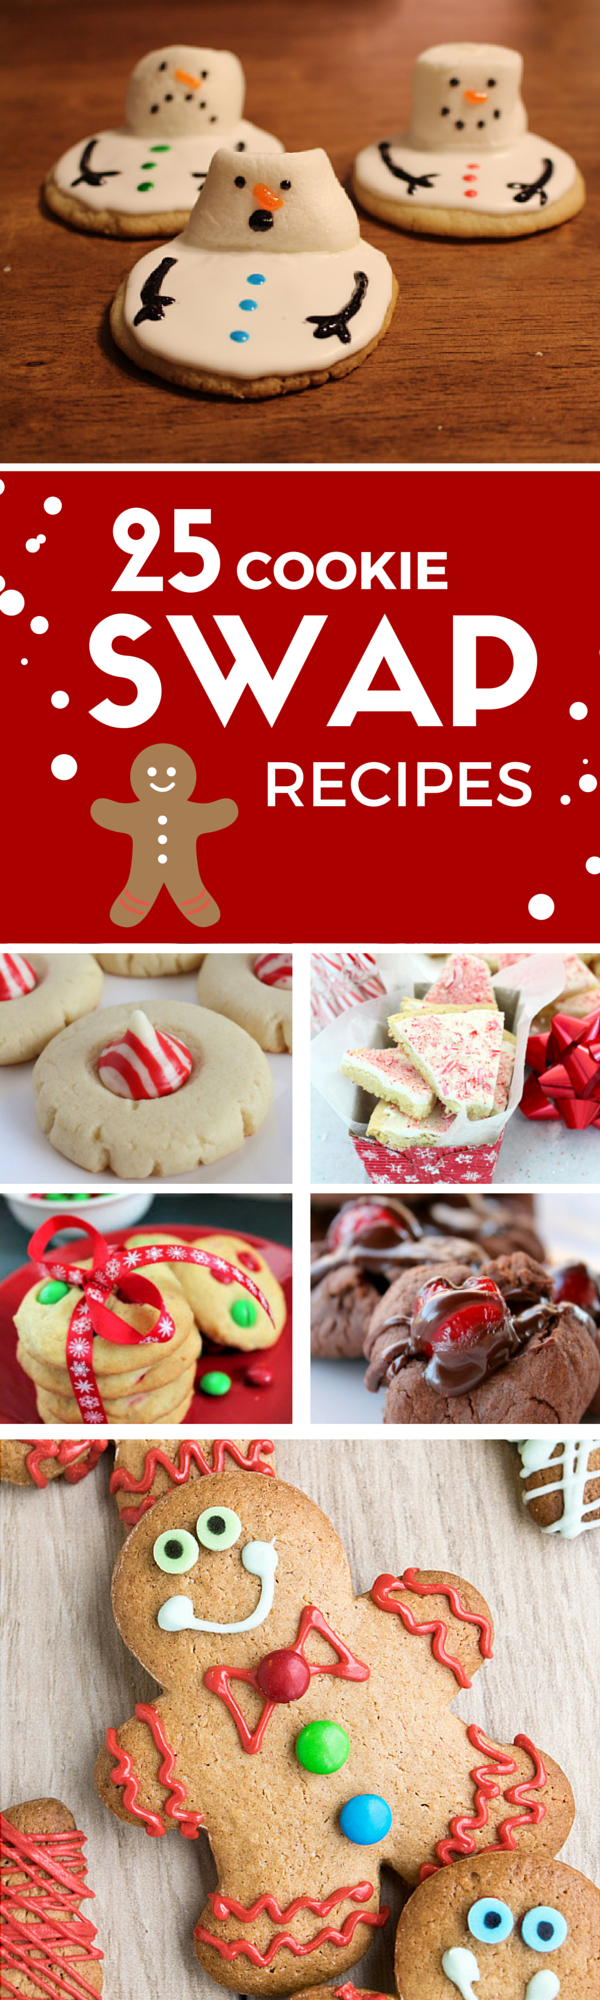 25 Cookie Swap Recipes